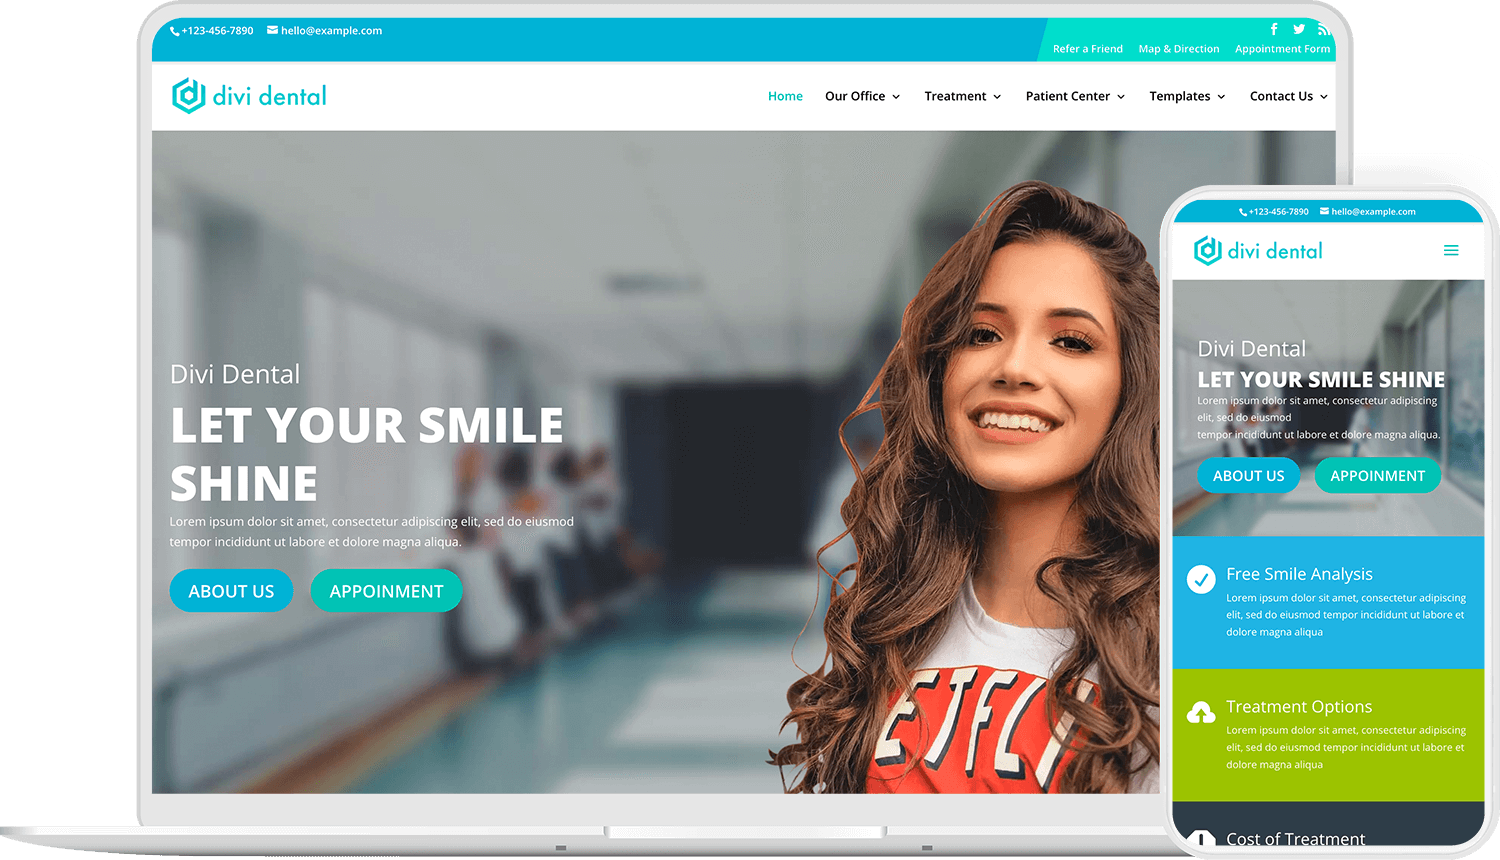 Divi Dental